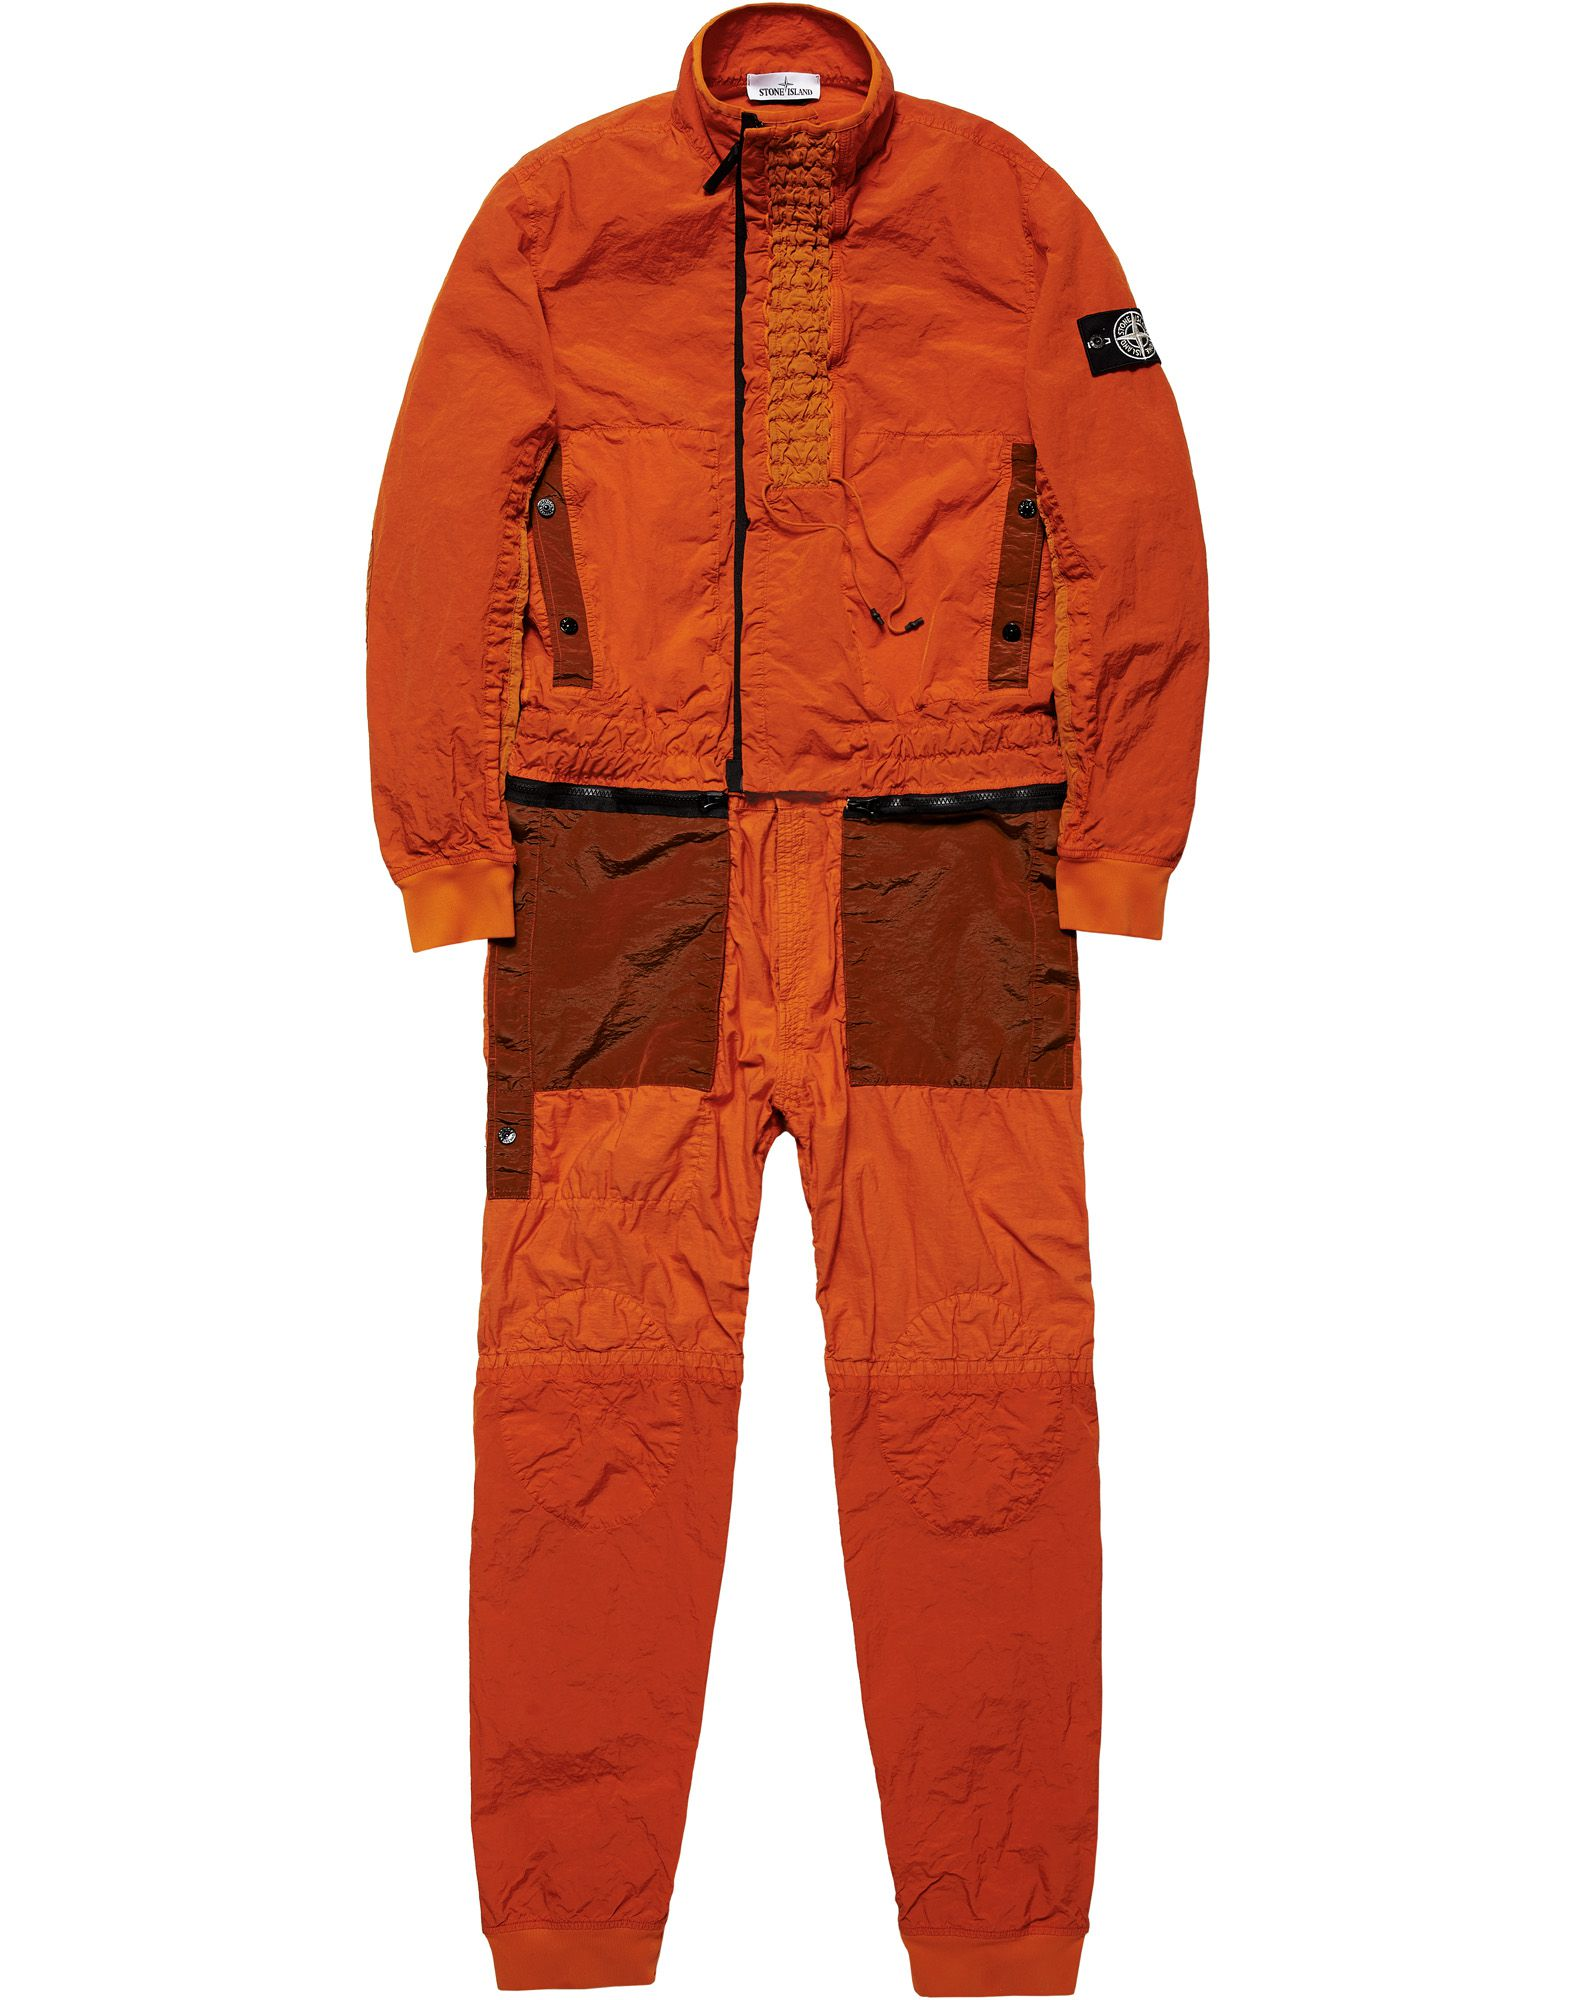 STONE ISLAND JUMPSUIT PROTOTYPE RESEARCH_SERIES 03<br>EXTREME COMPACTING PROCESS ON NYLON BASE